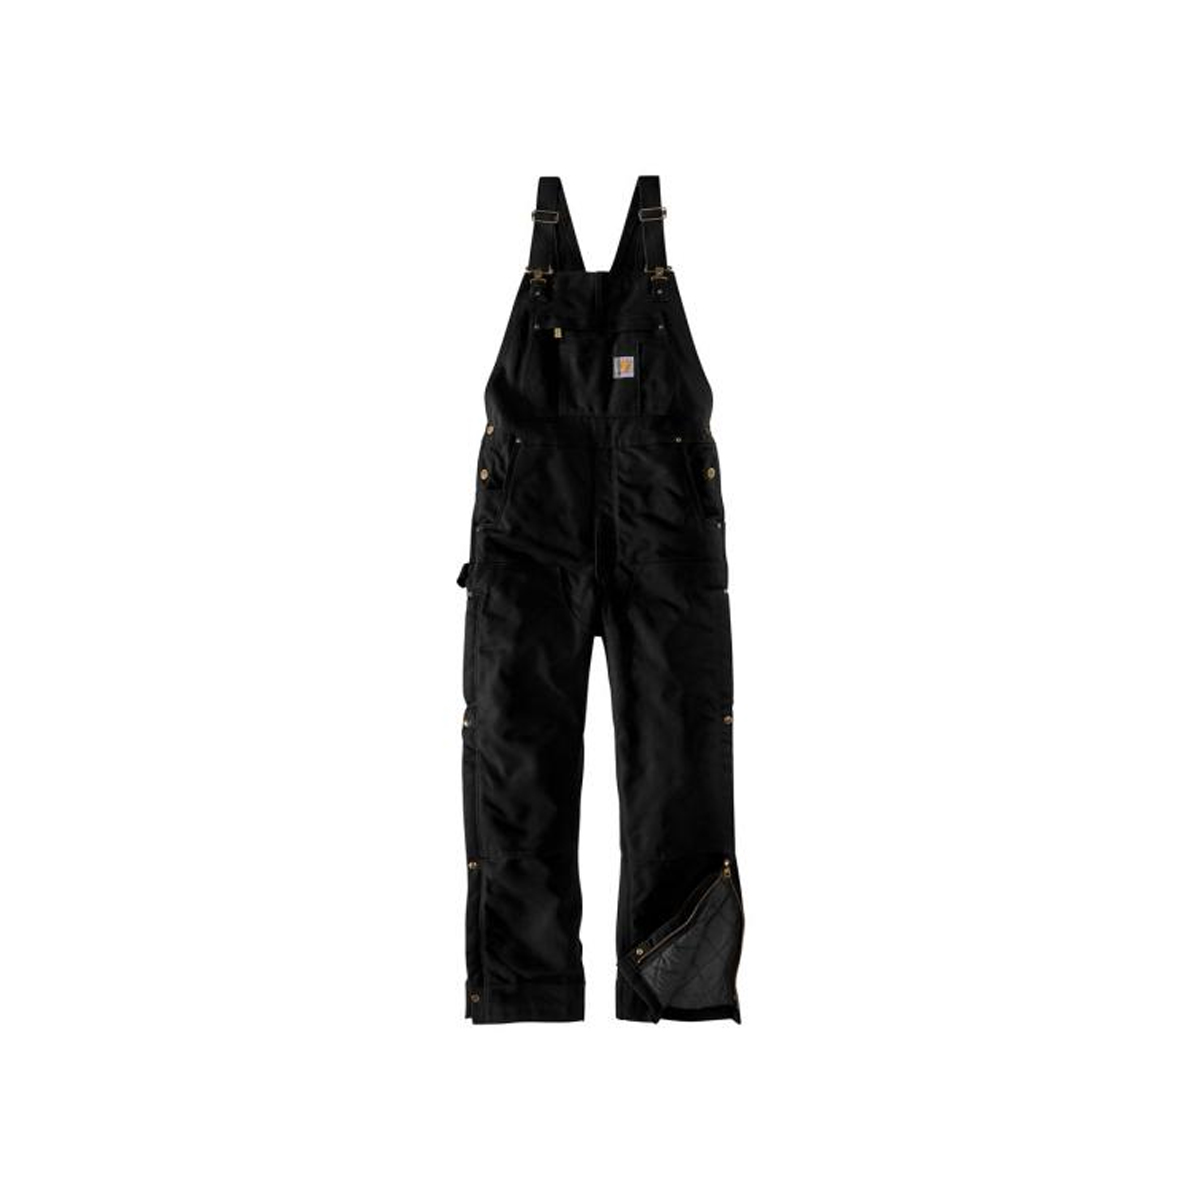 Men's Loose Fit Zip-to-Thigh Bib Overall, Black, swatch